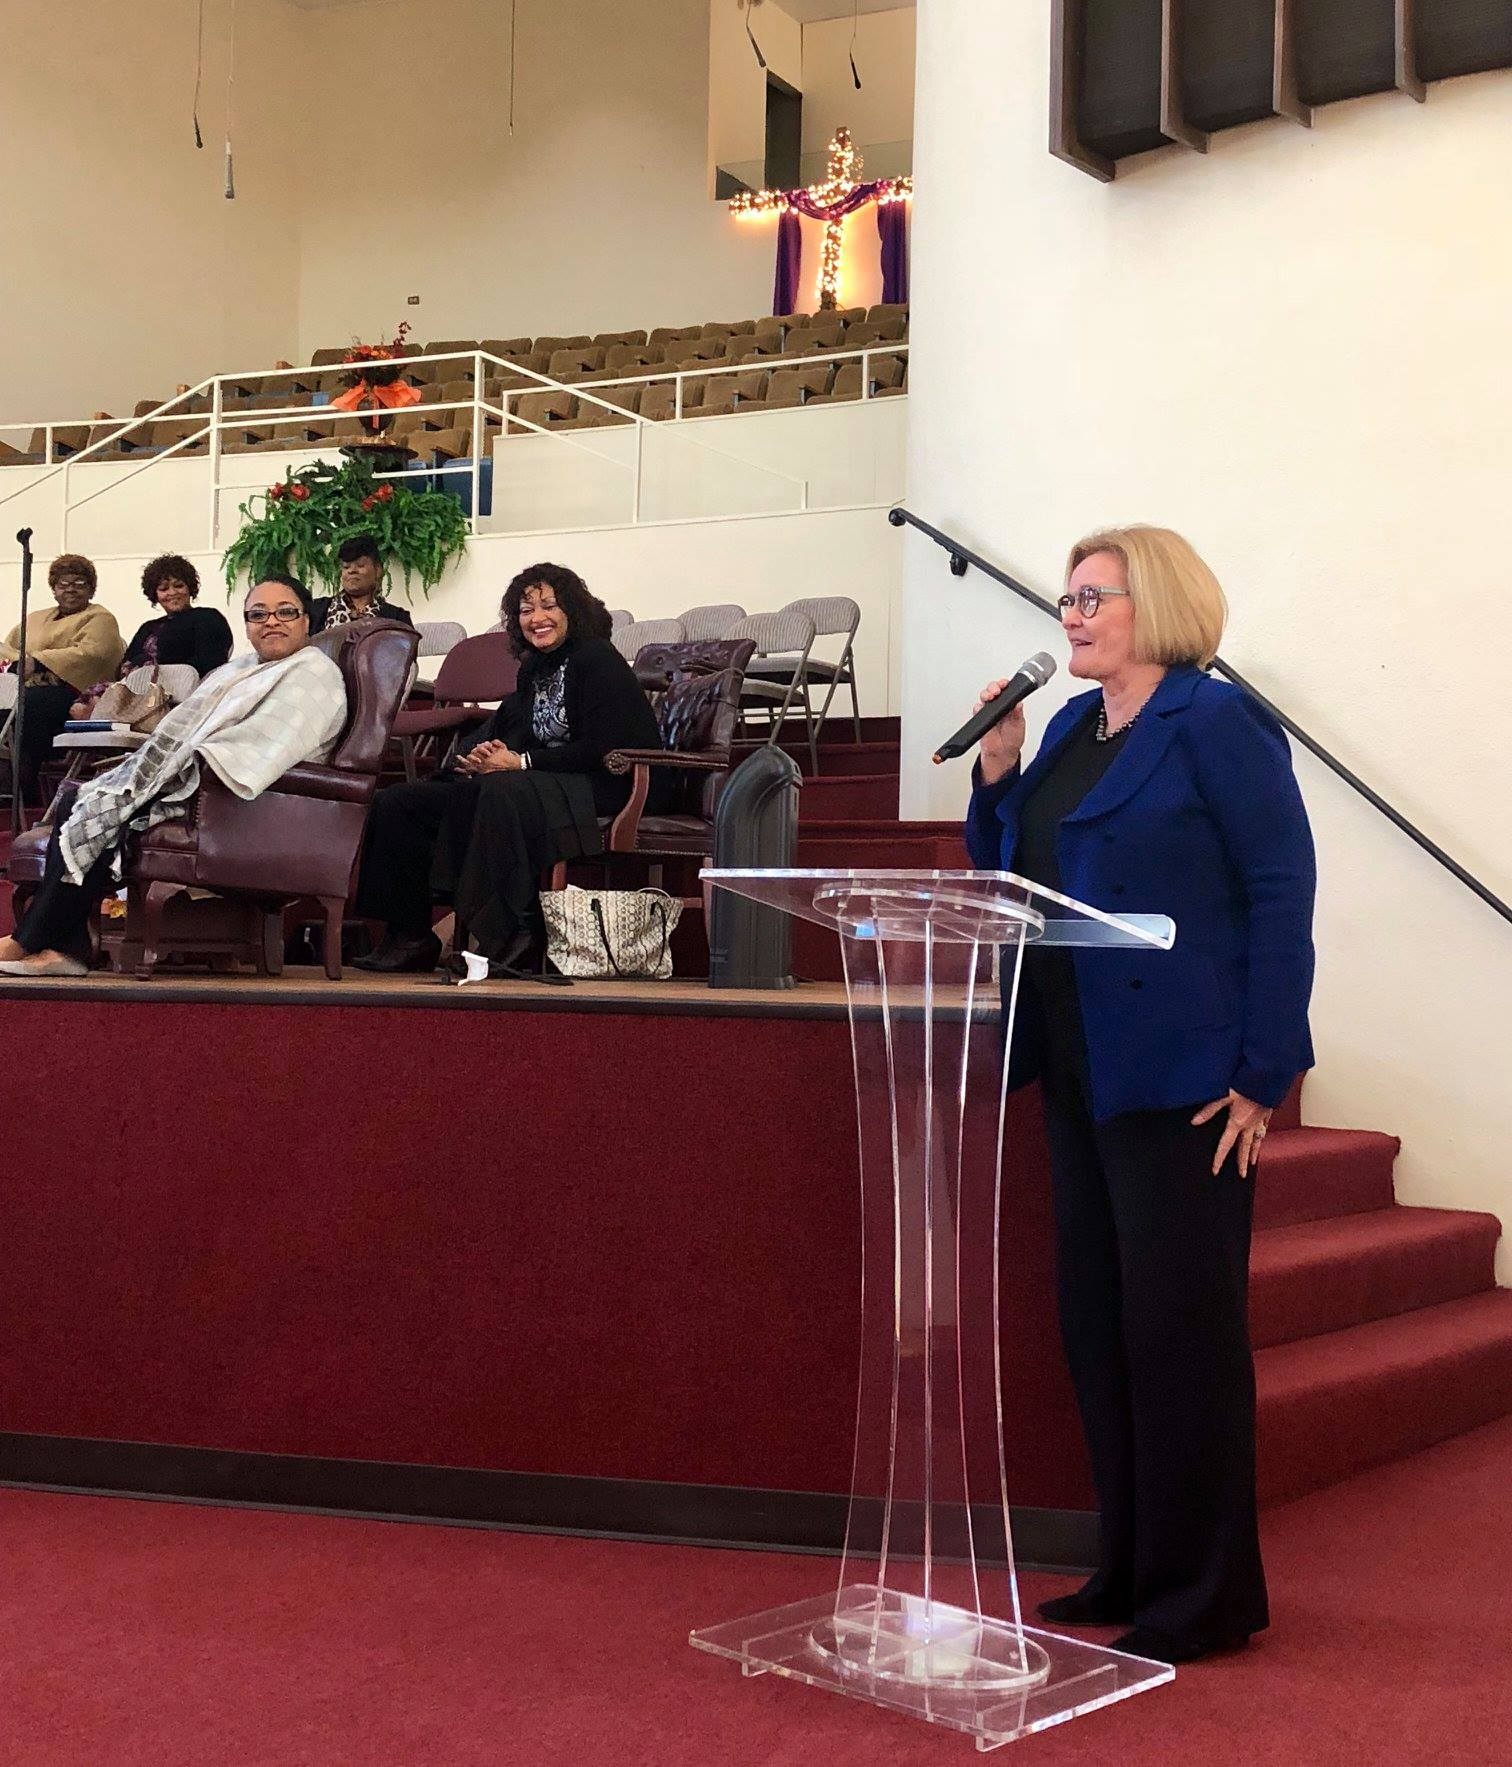 Senator Claire McCaskill speaks at Zion Grove Missionary Baptist Church on Oct. 21. (Screen capture from social media)